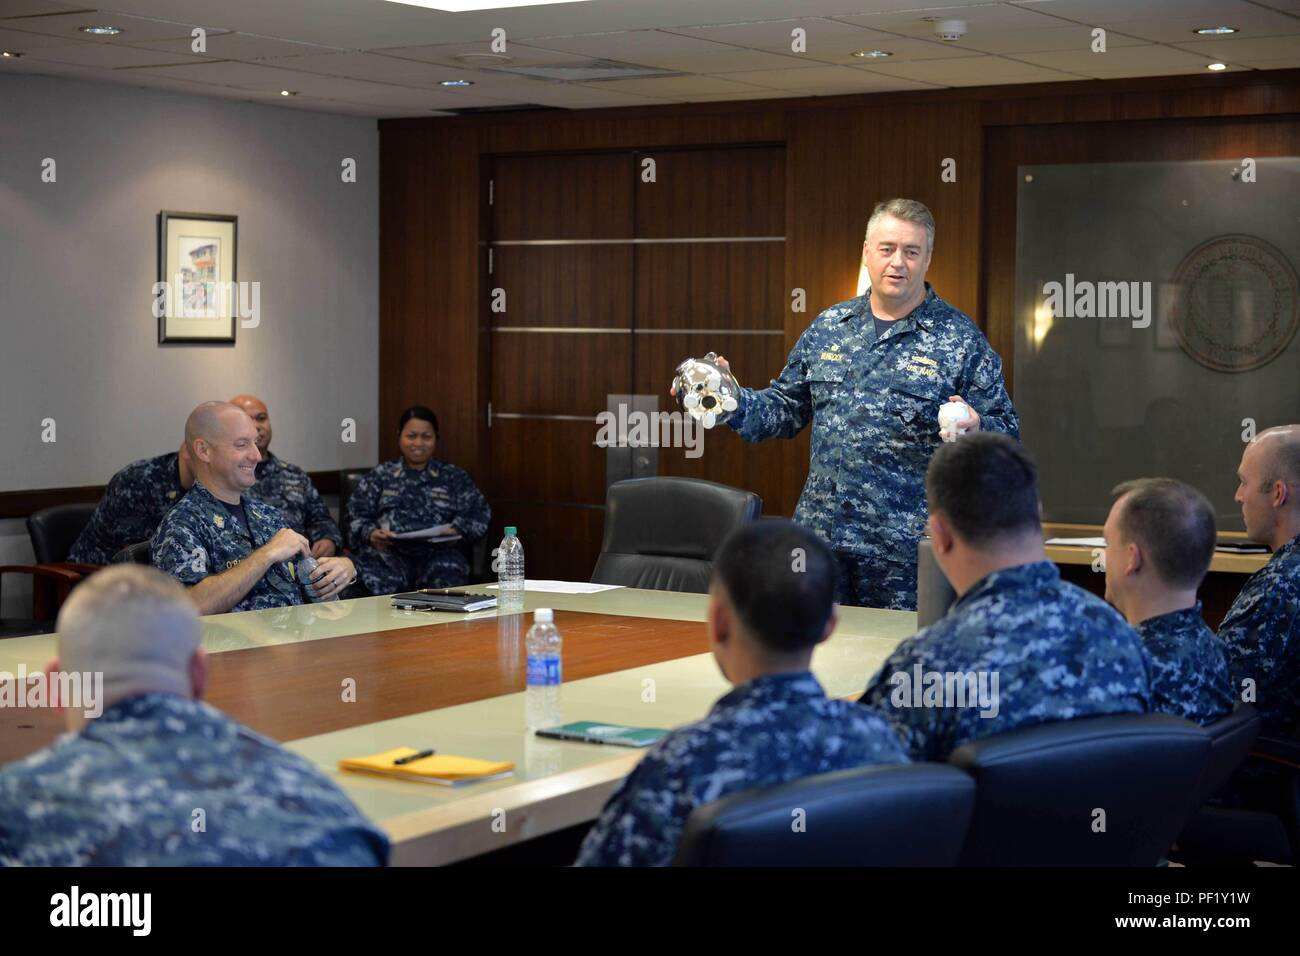 SINGAPORE (Feb. 24, 2016) - Capt. Scott Murdock, commanding officer, Navy Region Center Singapore (NRCS), discusses the importance of saving for the future with Sailors assigned to NRCS, Feb. 24, 2016. Murdock's advice to the Sailors was to 'start small and think big.' This year, across the fleet, Military Saves Week is observed with the goal of this year's campaign to increase awareness about the necessity to build wealth, reduce debt and to demonstrate user-friendly methods for people to make a commitment to save. - Stock Image